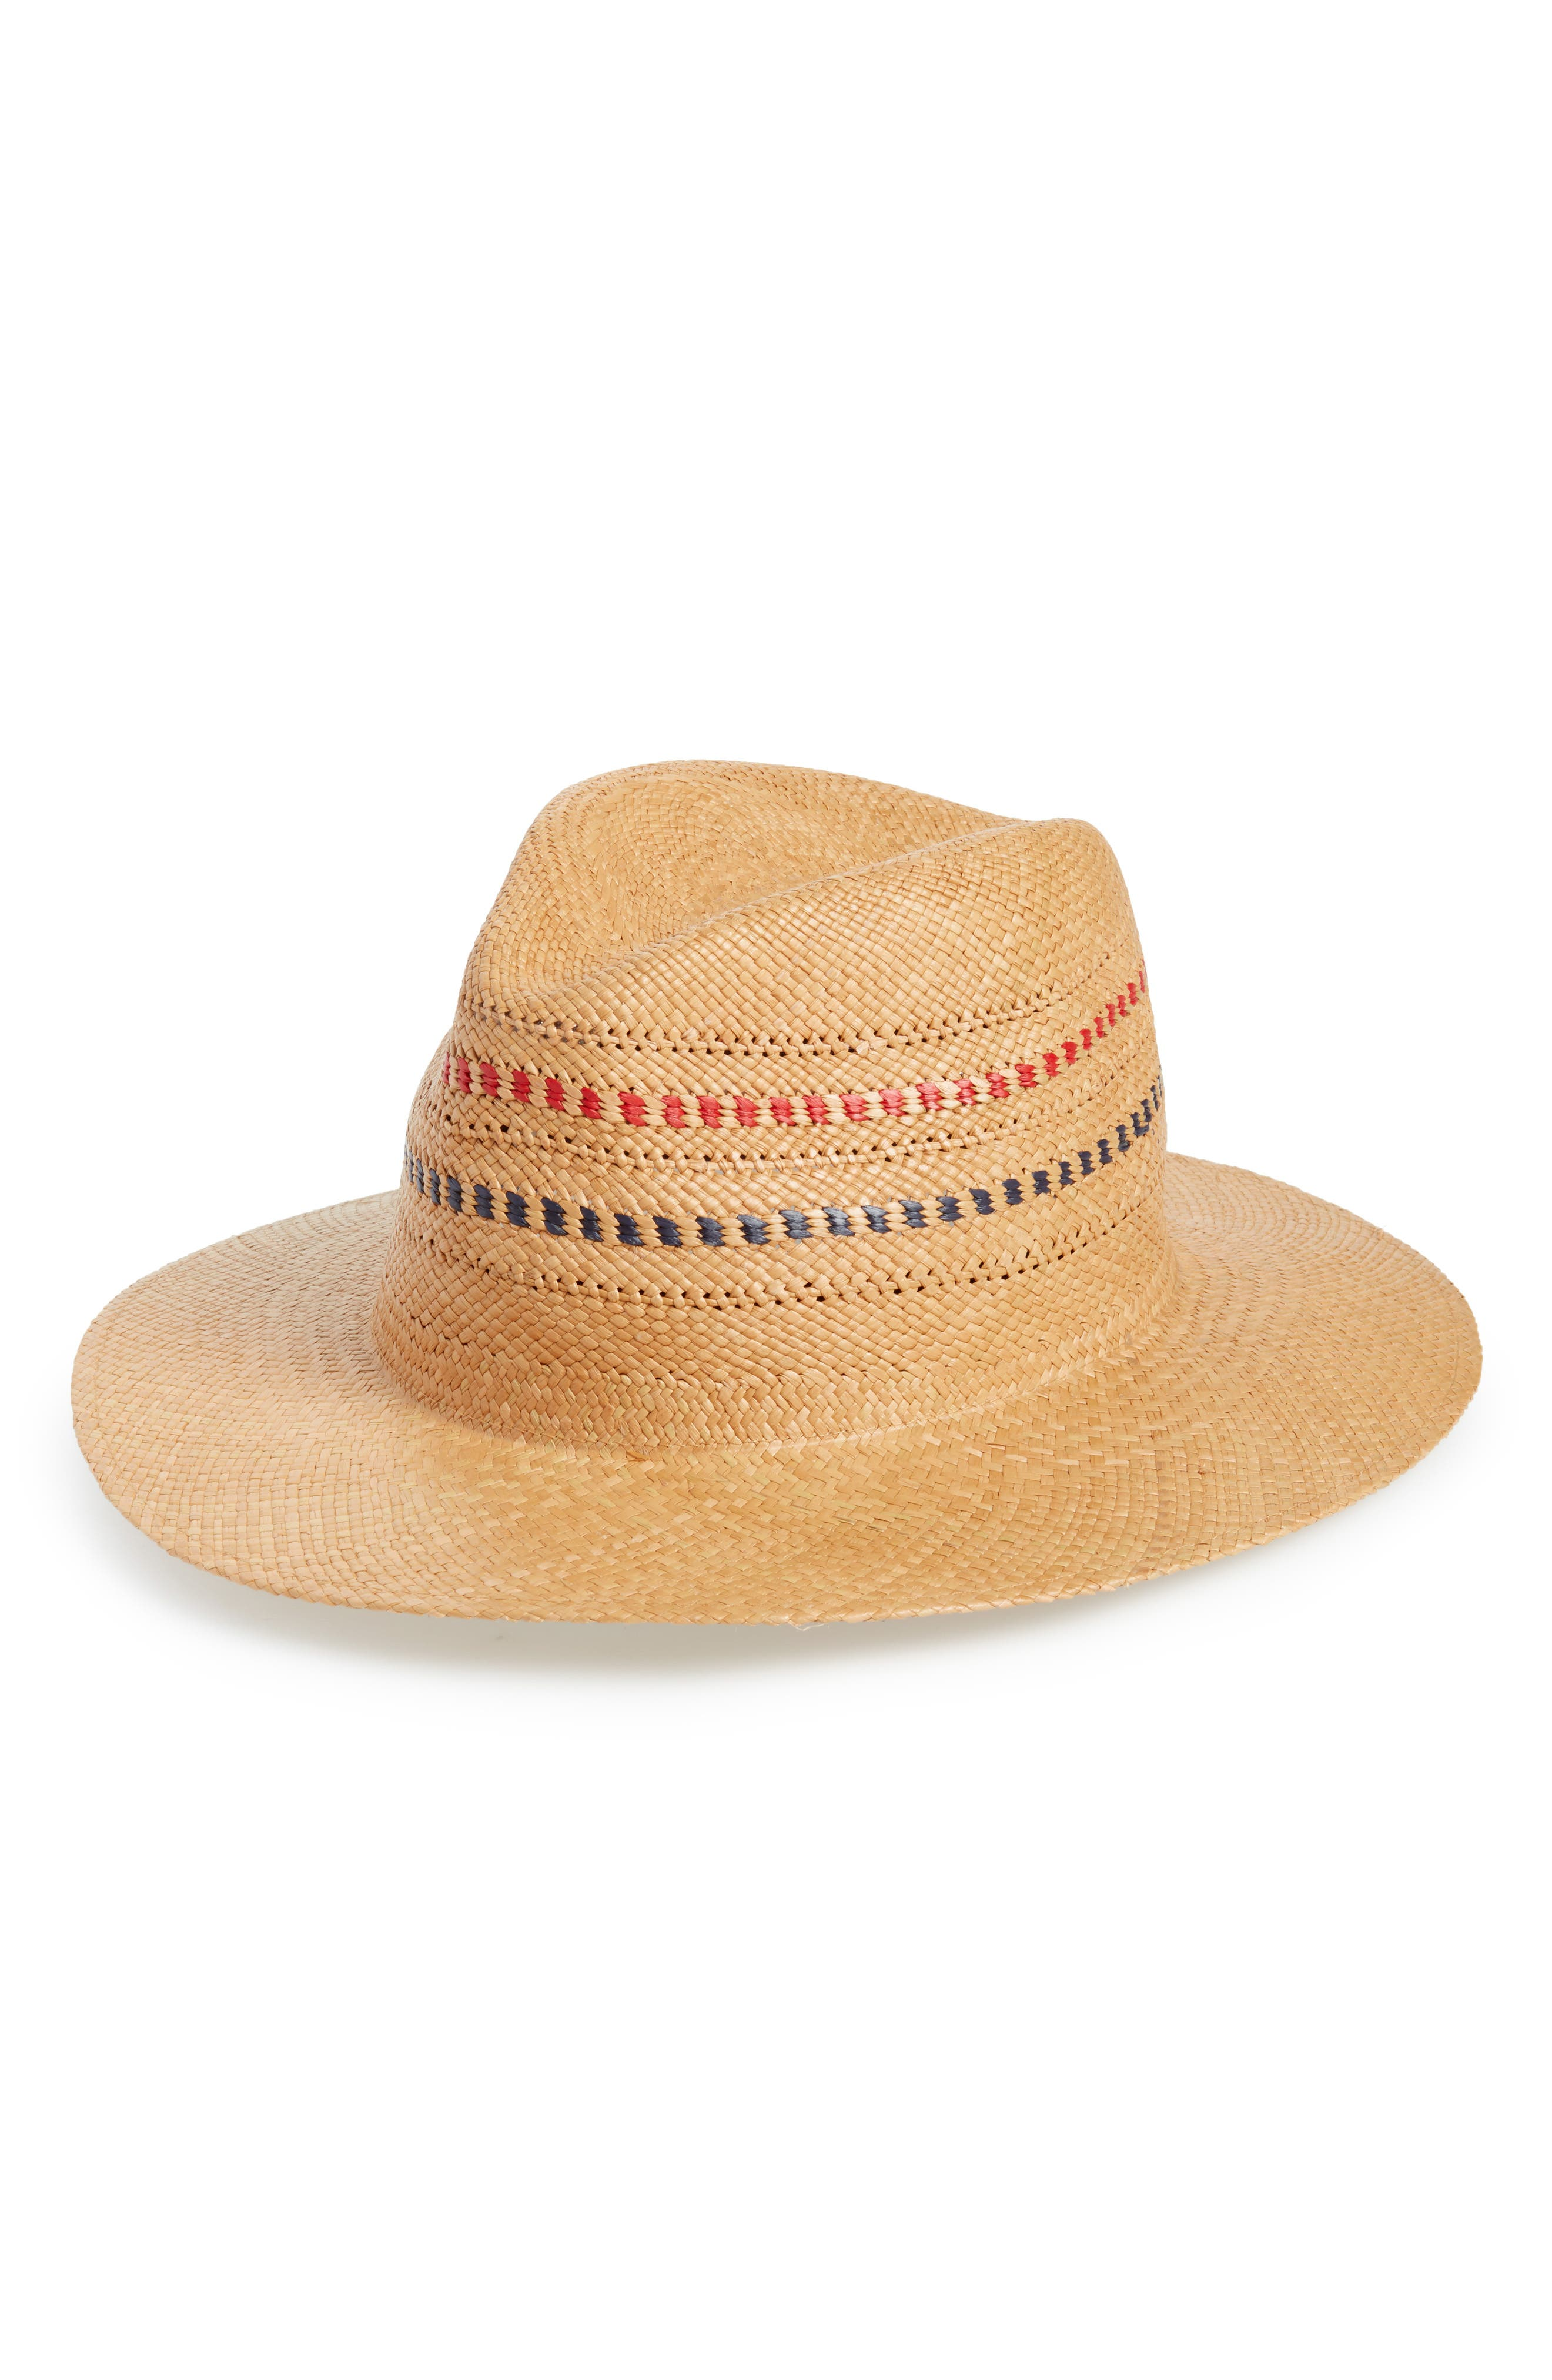 Panama Straw Hat,                             Main thumbnail 1, color,                             RED/ BLUE MULTI